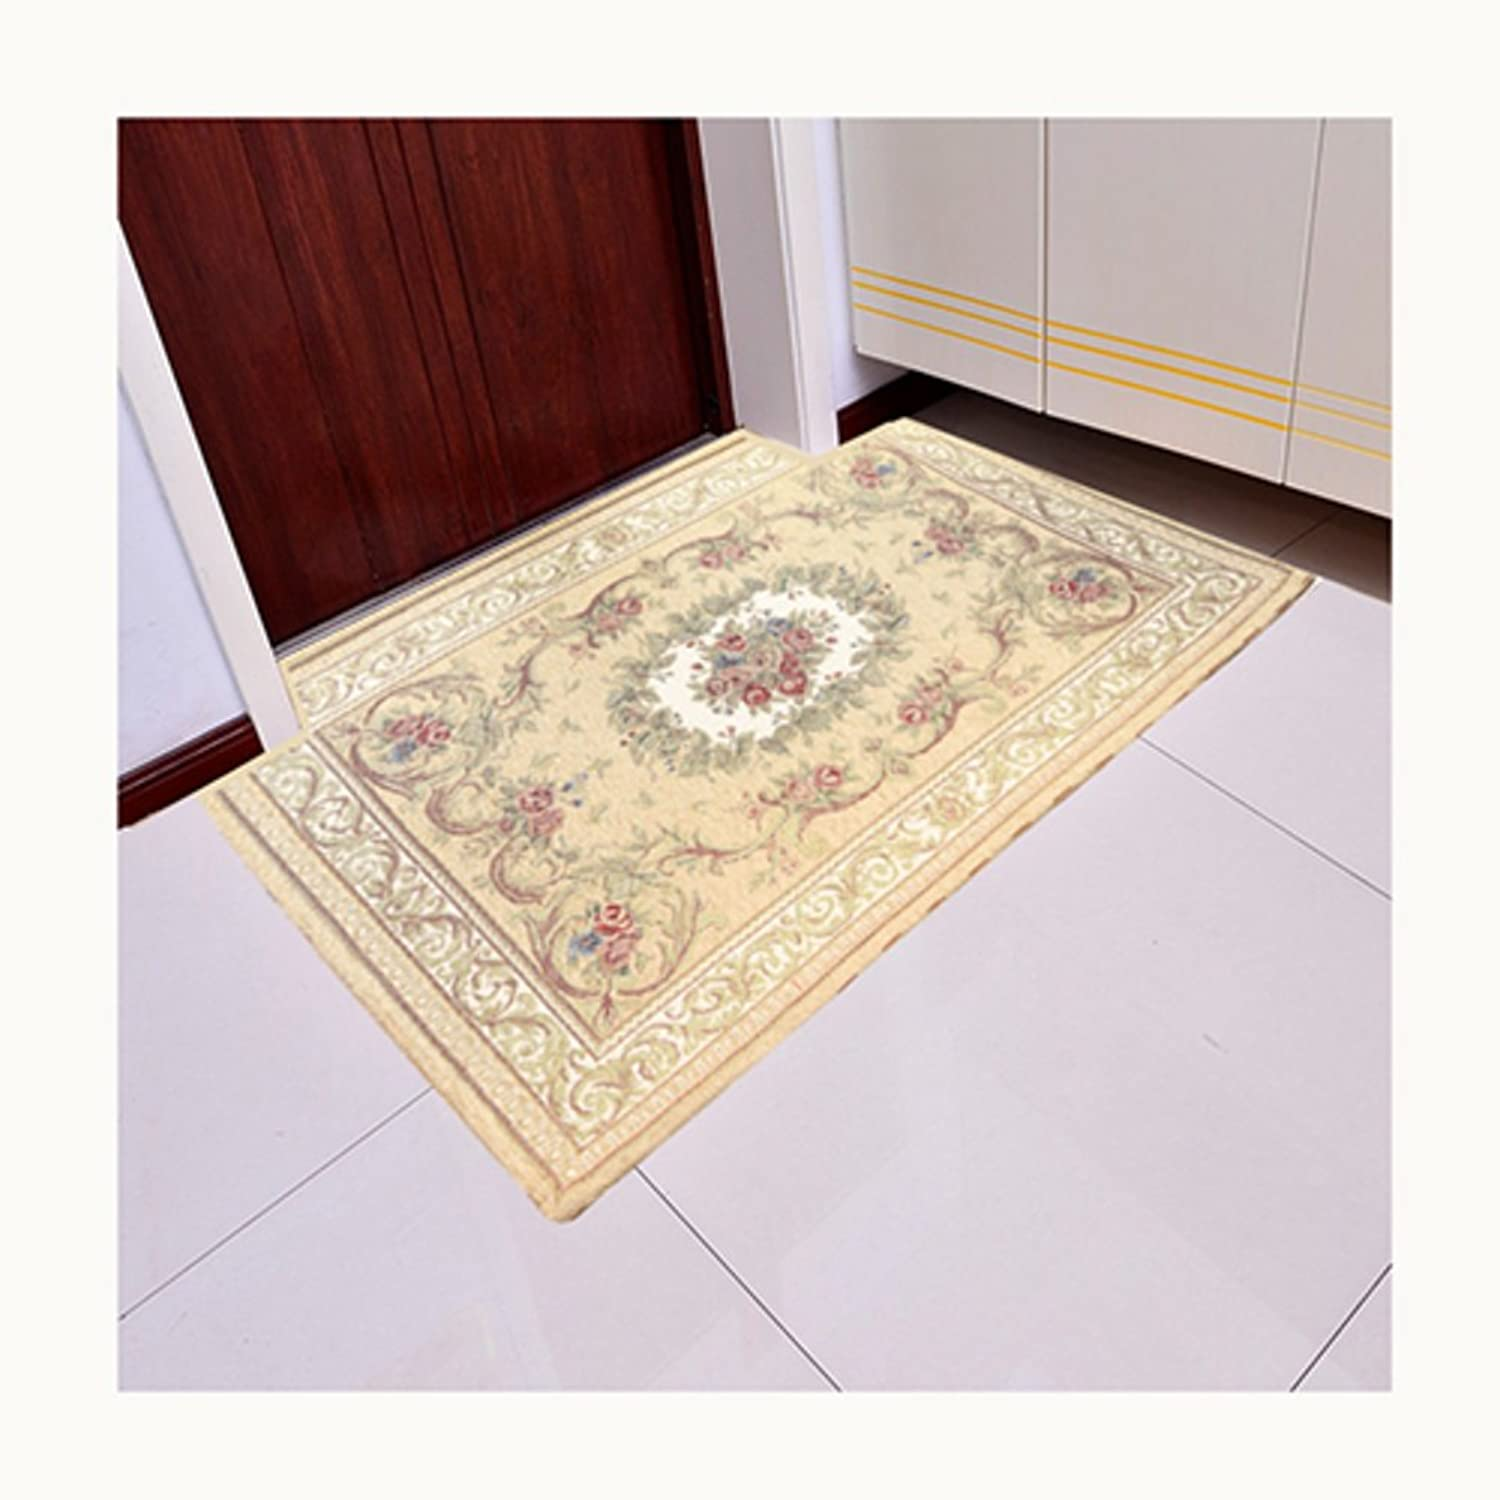 Indoor Mats Door,Indoor Mats European Style,Hall,Bathroom Mats Bedroom,Living Room,Bathroom,Indoor Mat-E 140x200cm(55x79inch)